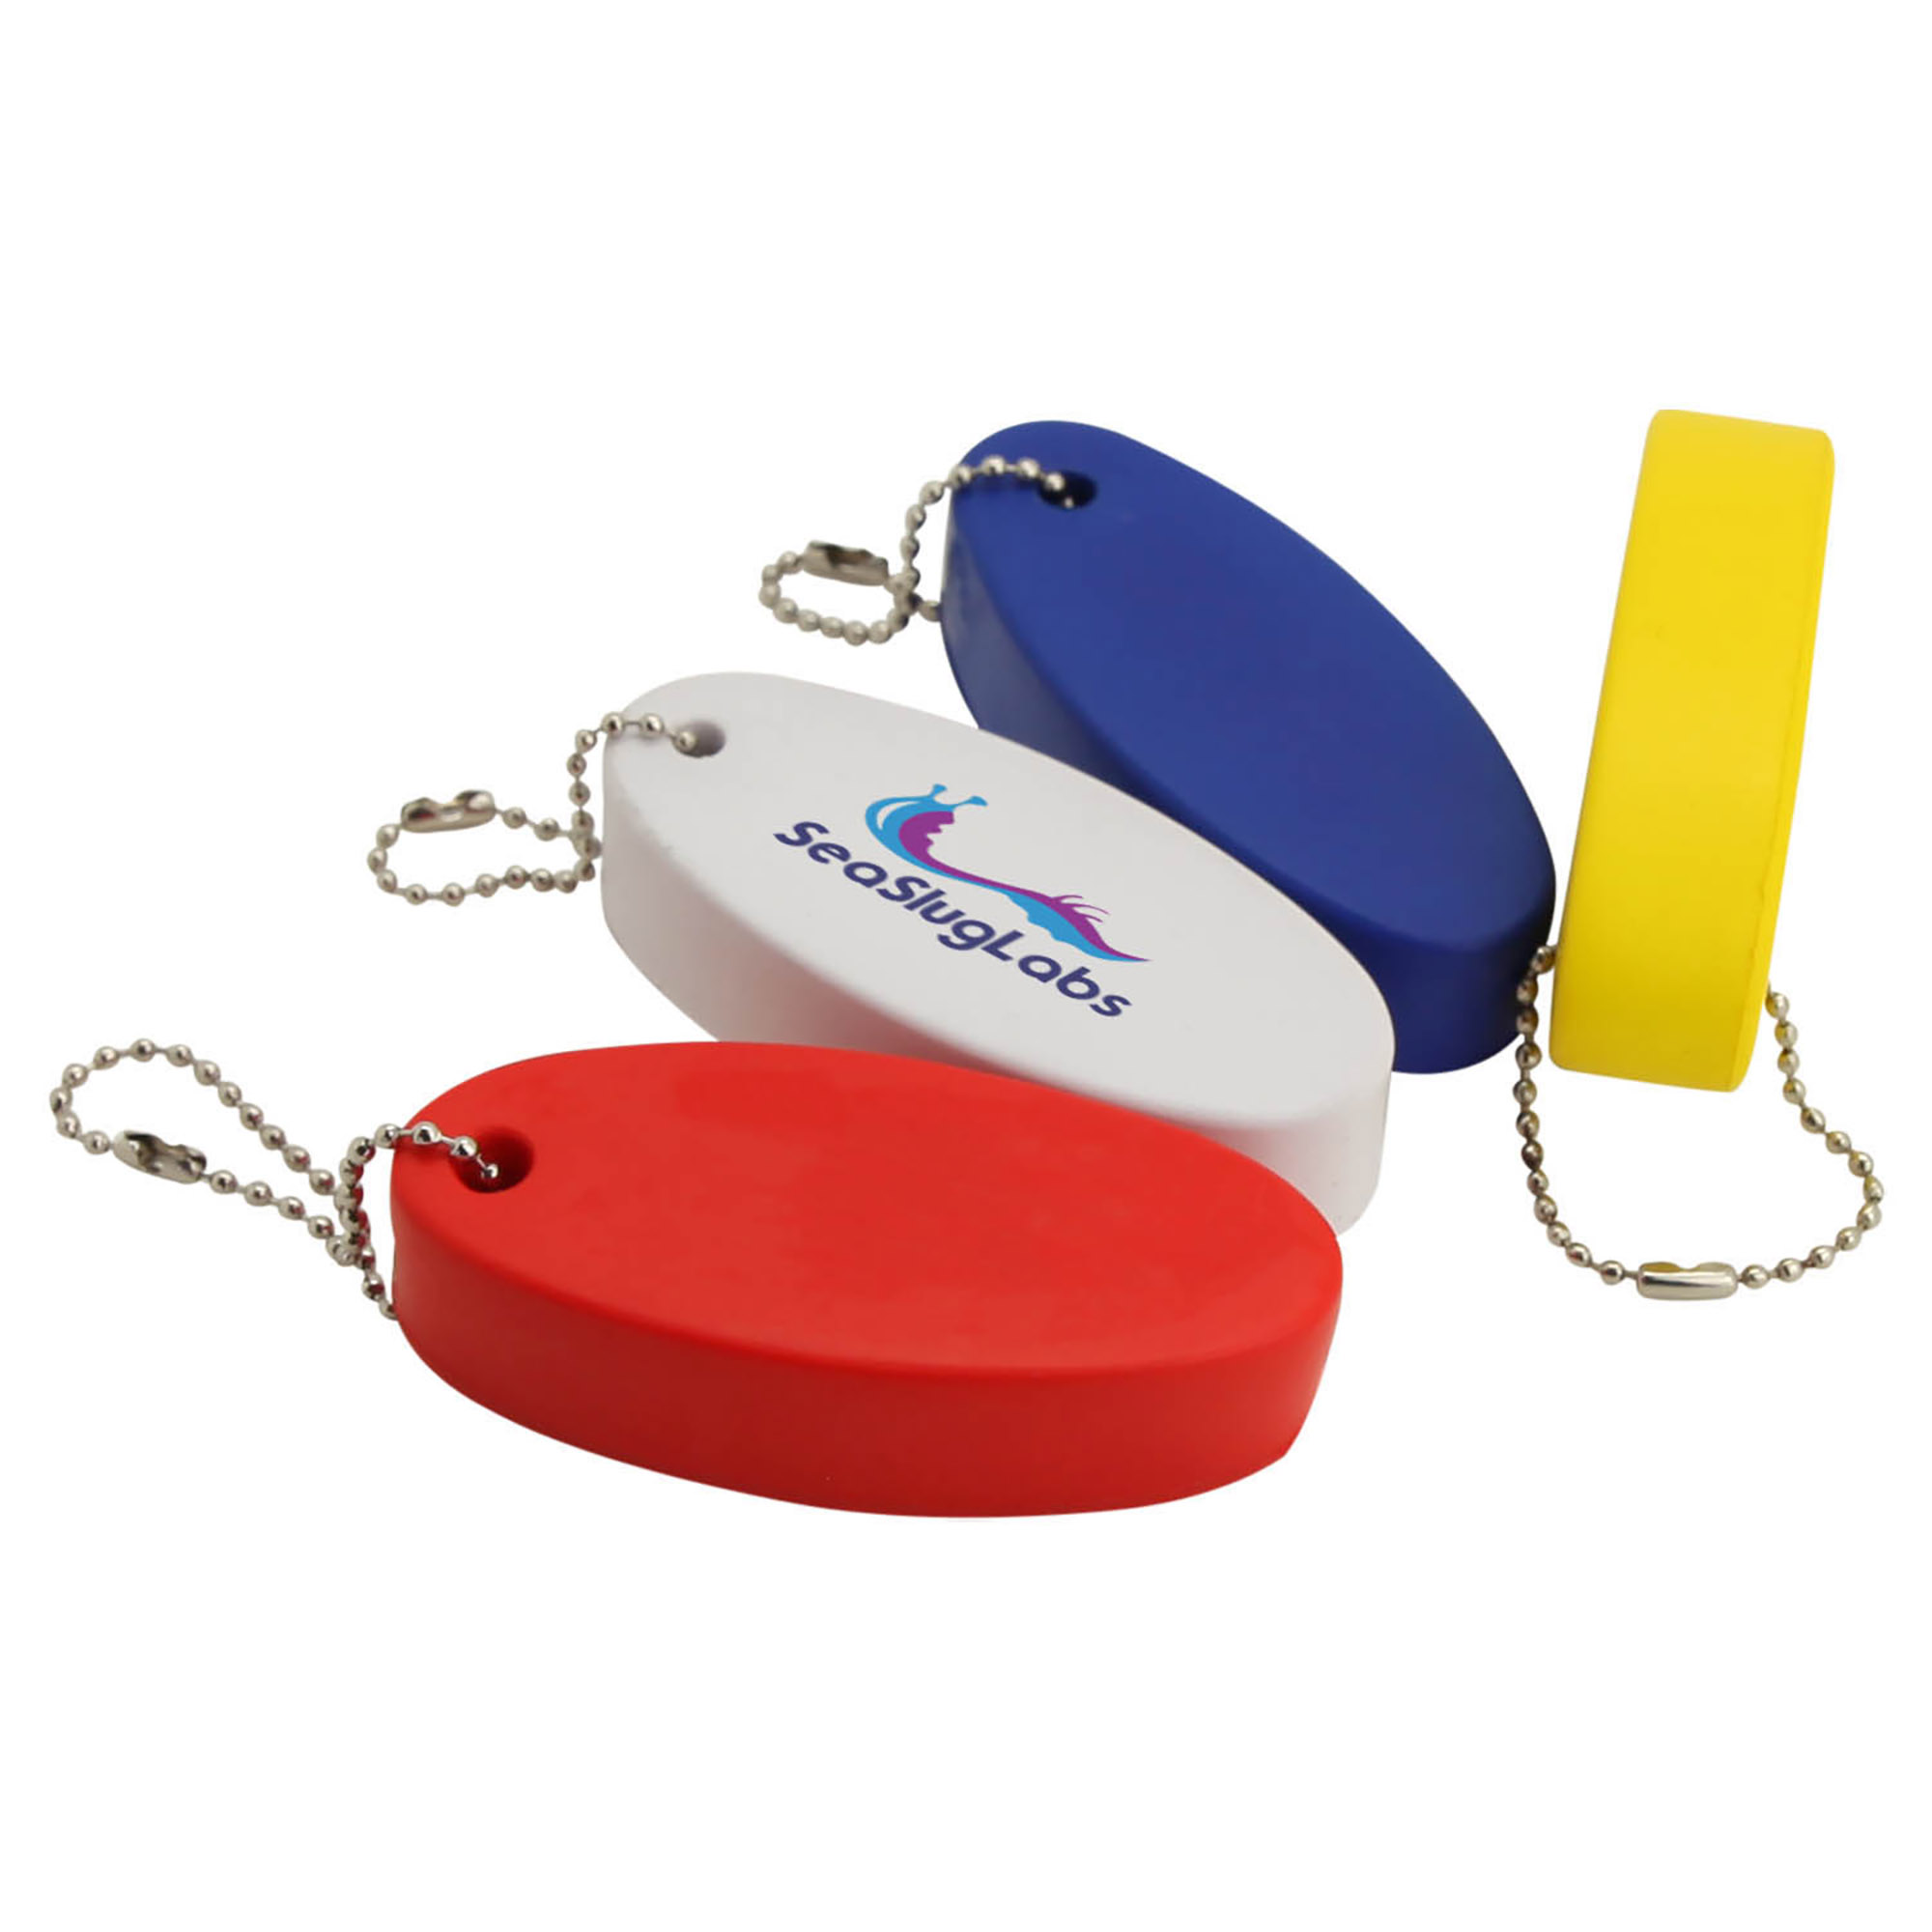 STRESS FLOATING KEY RING - 1 Colour Print, From $0.67